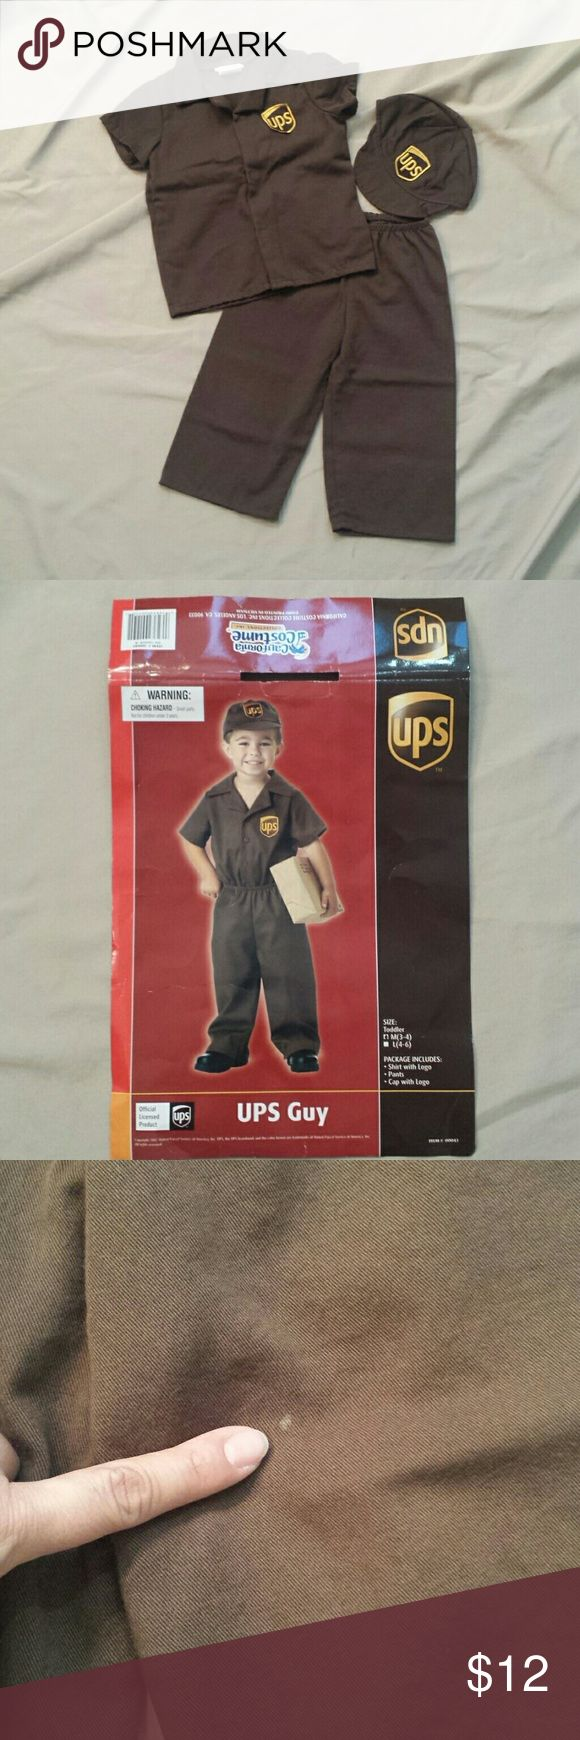 Toddler Kids UPS Guy Costume Does your son want to dress up as dad for Halloween? This is perfect if dad works for UPS! One of the best kids costumes I've ever purchased,  it is well constructed in a nice thick fabric.  65% Polyester,  35% Cotton. Elastic waist pants. Velcro closure shirt. One tiny spot on left thigh,  shown in pic 3. Brand: California Costume Collections, Inc. Costumes Halloween